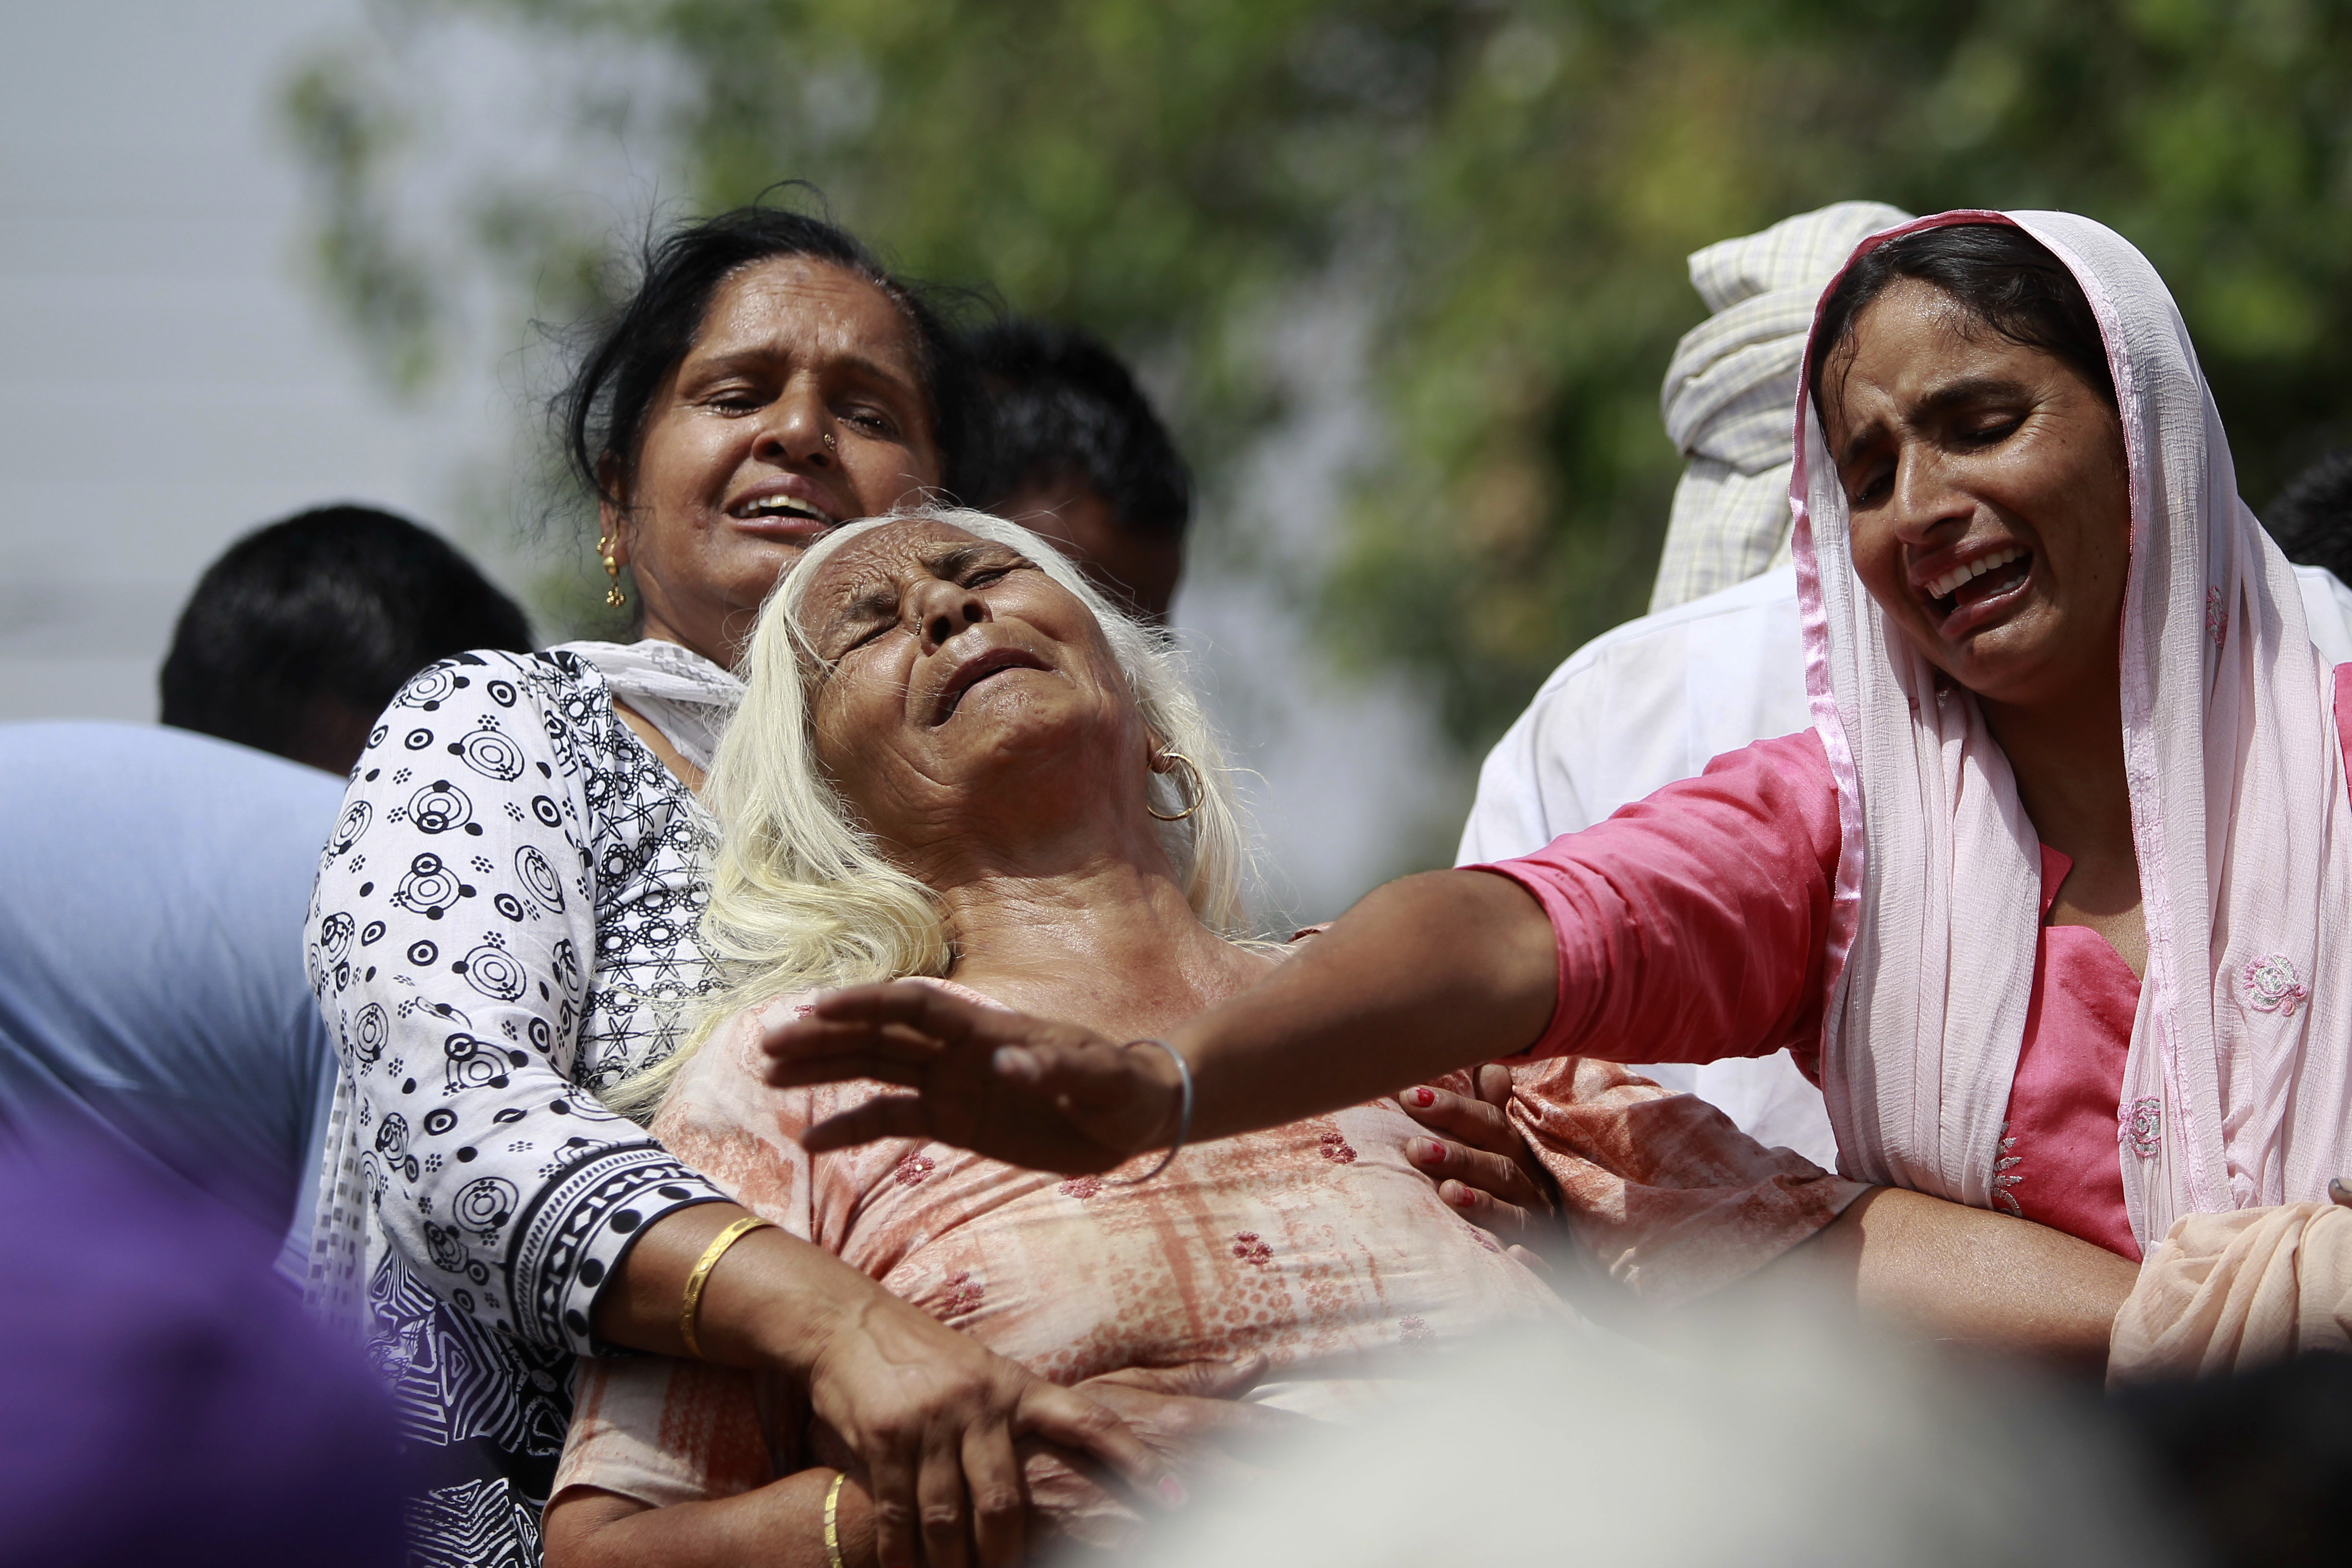 Indian women wail near the bodies of relatives, victims of cross-border firing, as they block a road during a protest against the state government in Ranbir Singh Pura, Jammu and Kashmir state, India, Friday, May 18, 2018. Eight civilians, including a husband and wife and four members of a family, were killed after Indian and Pakistani soldiers targeted border posts and villages along the highly militarised frontier in disputed Kashmir, officials said Friday. An Indian soldier was also killed in the fighting. Photo: AP